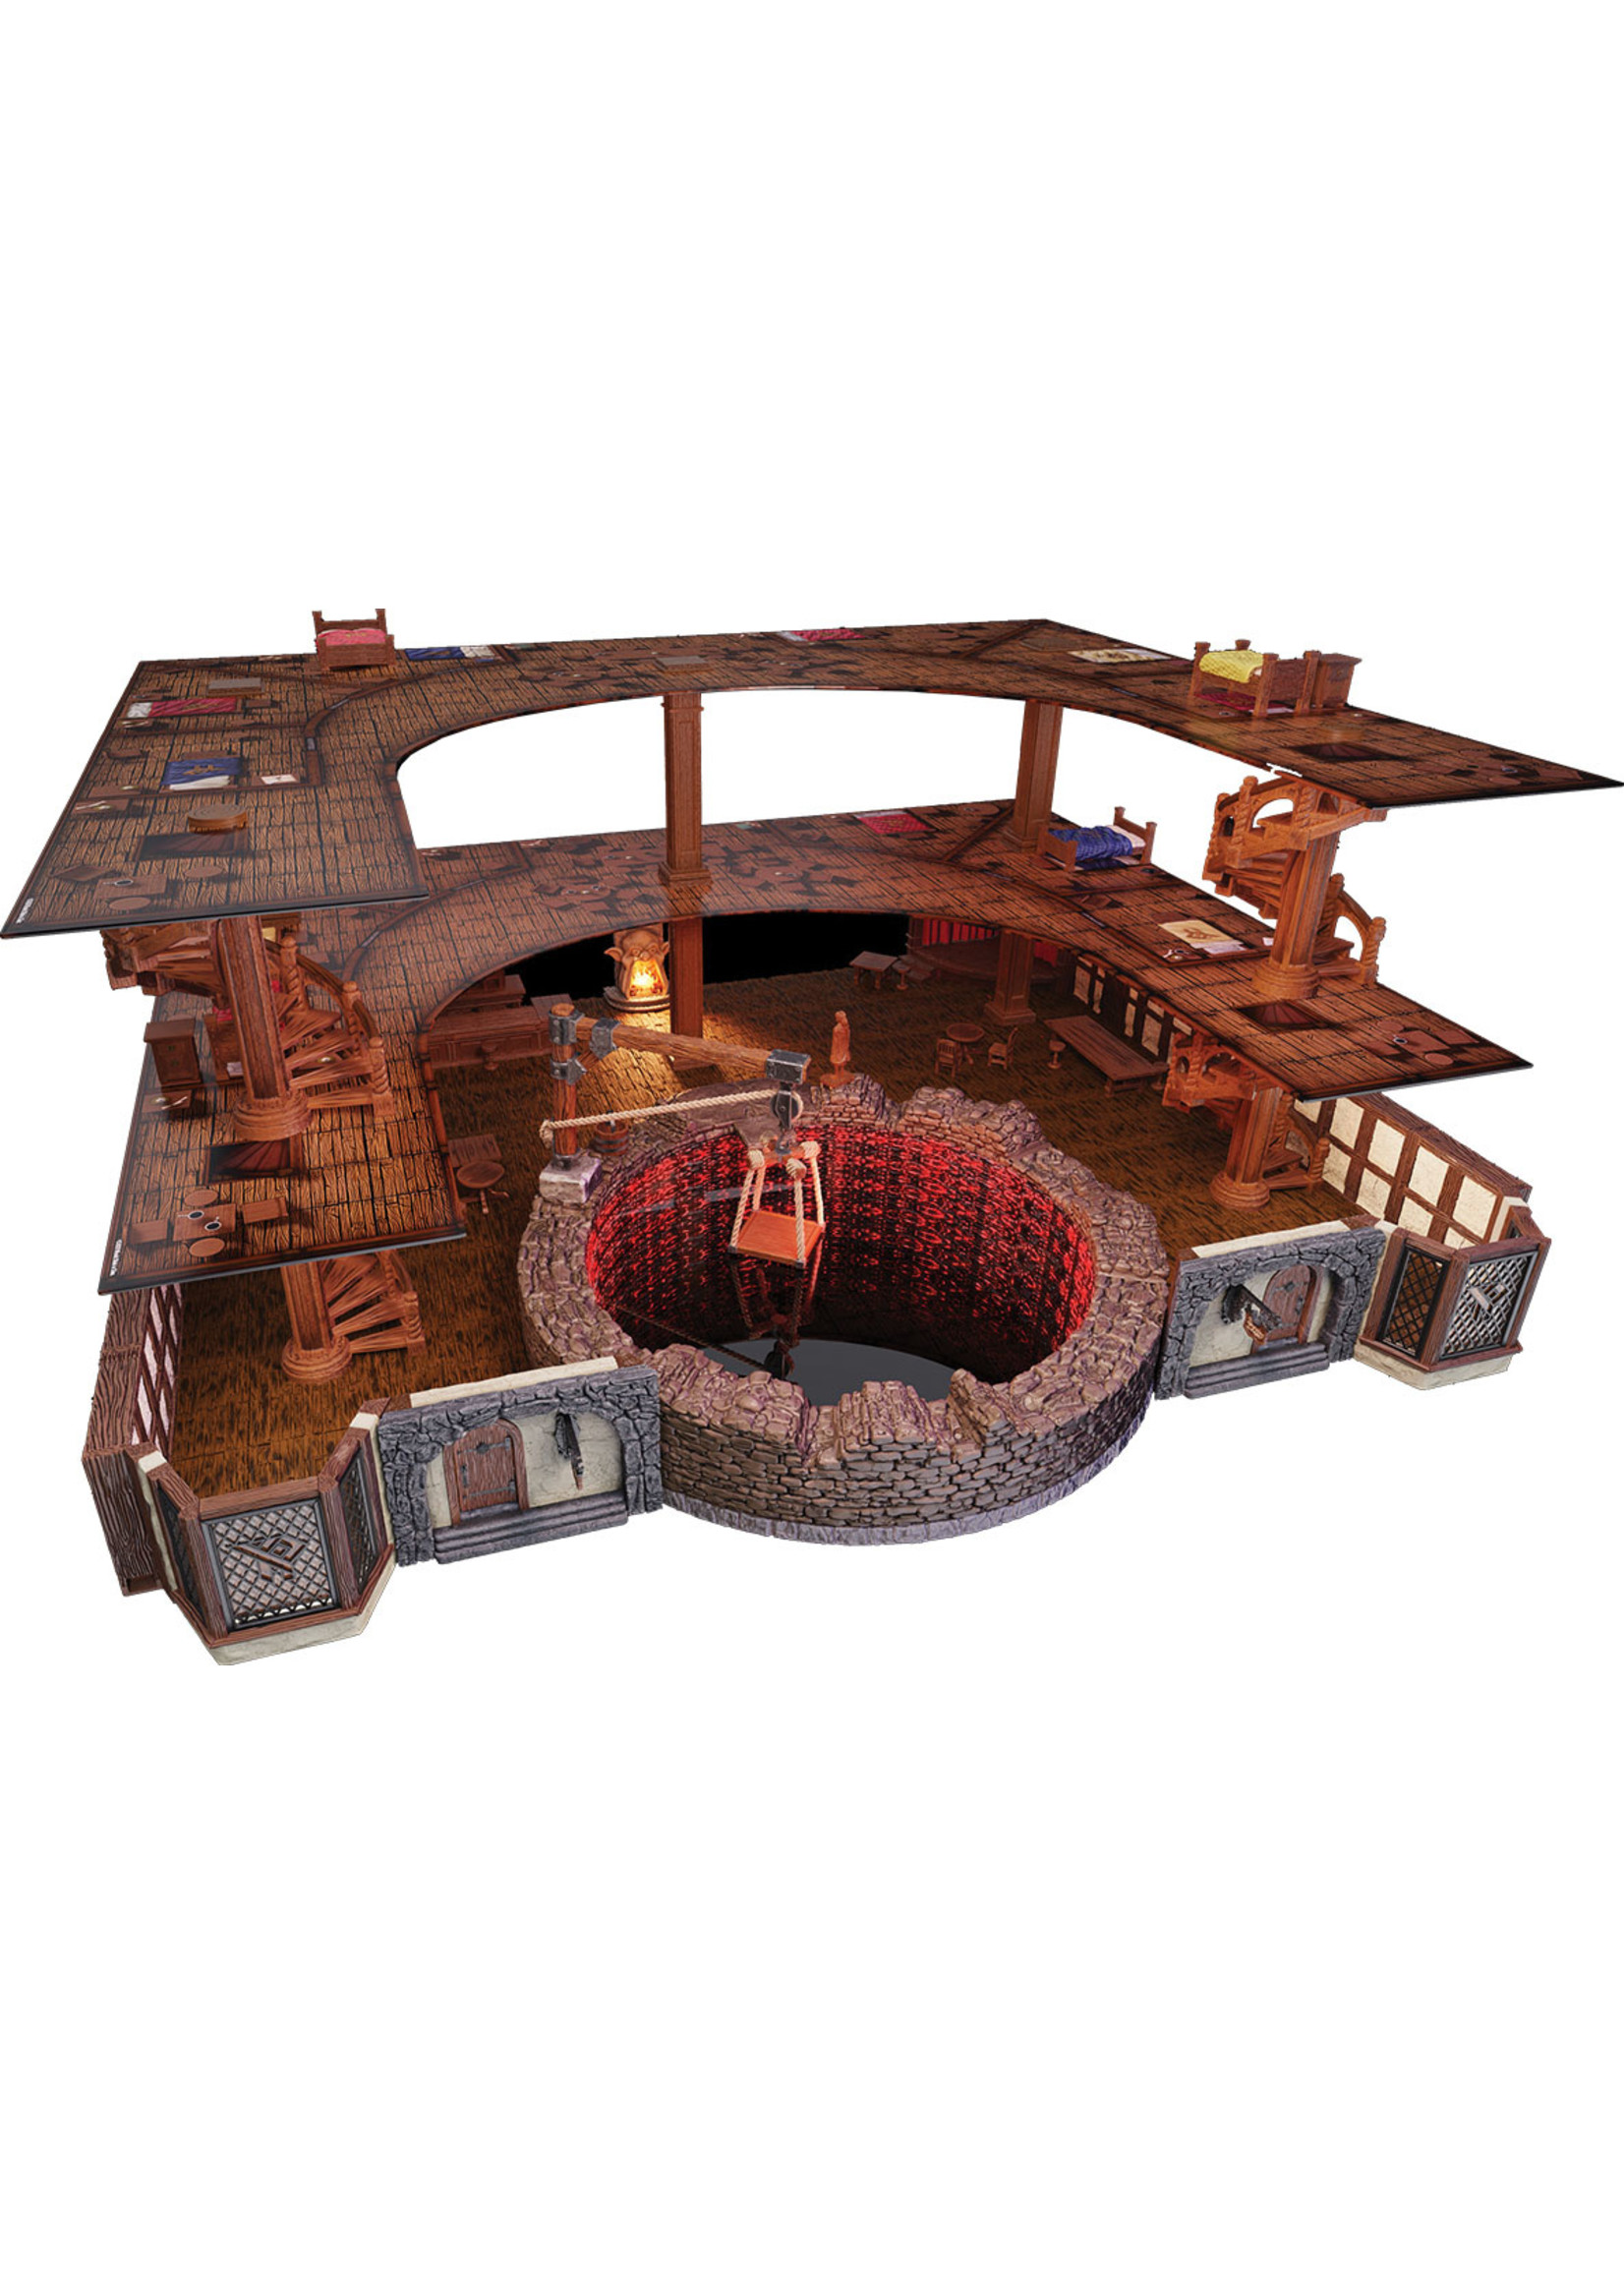 D&D Icons of the Realms The Yawning Portal Inn